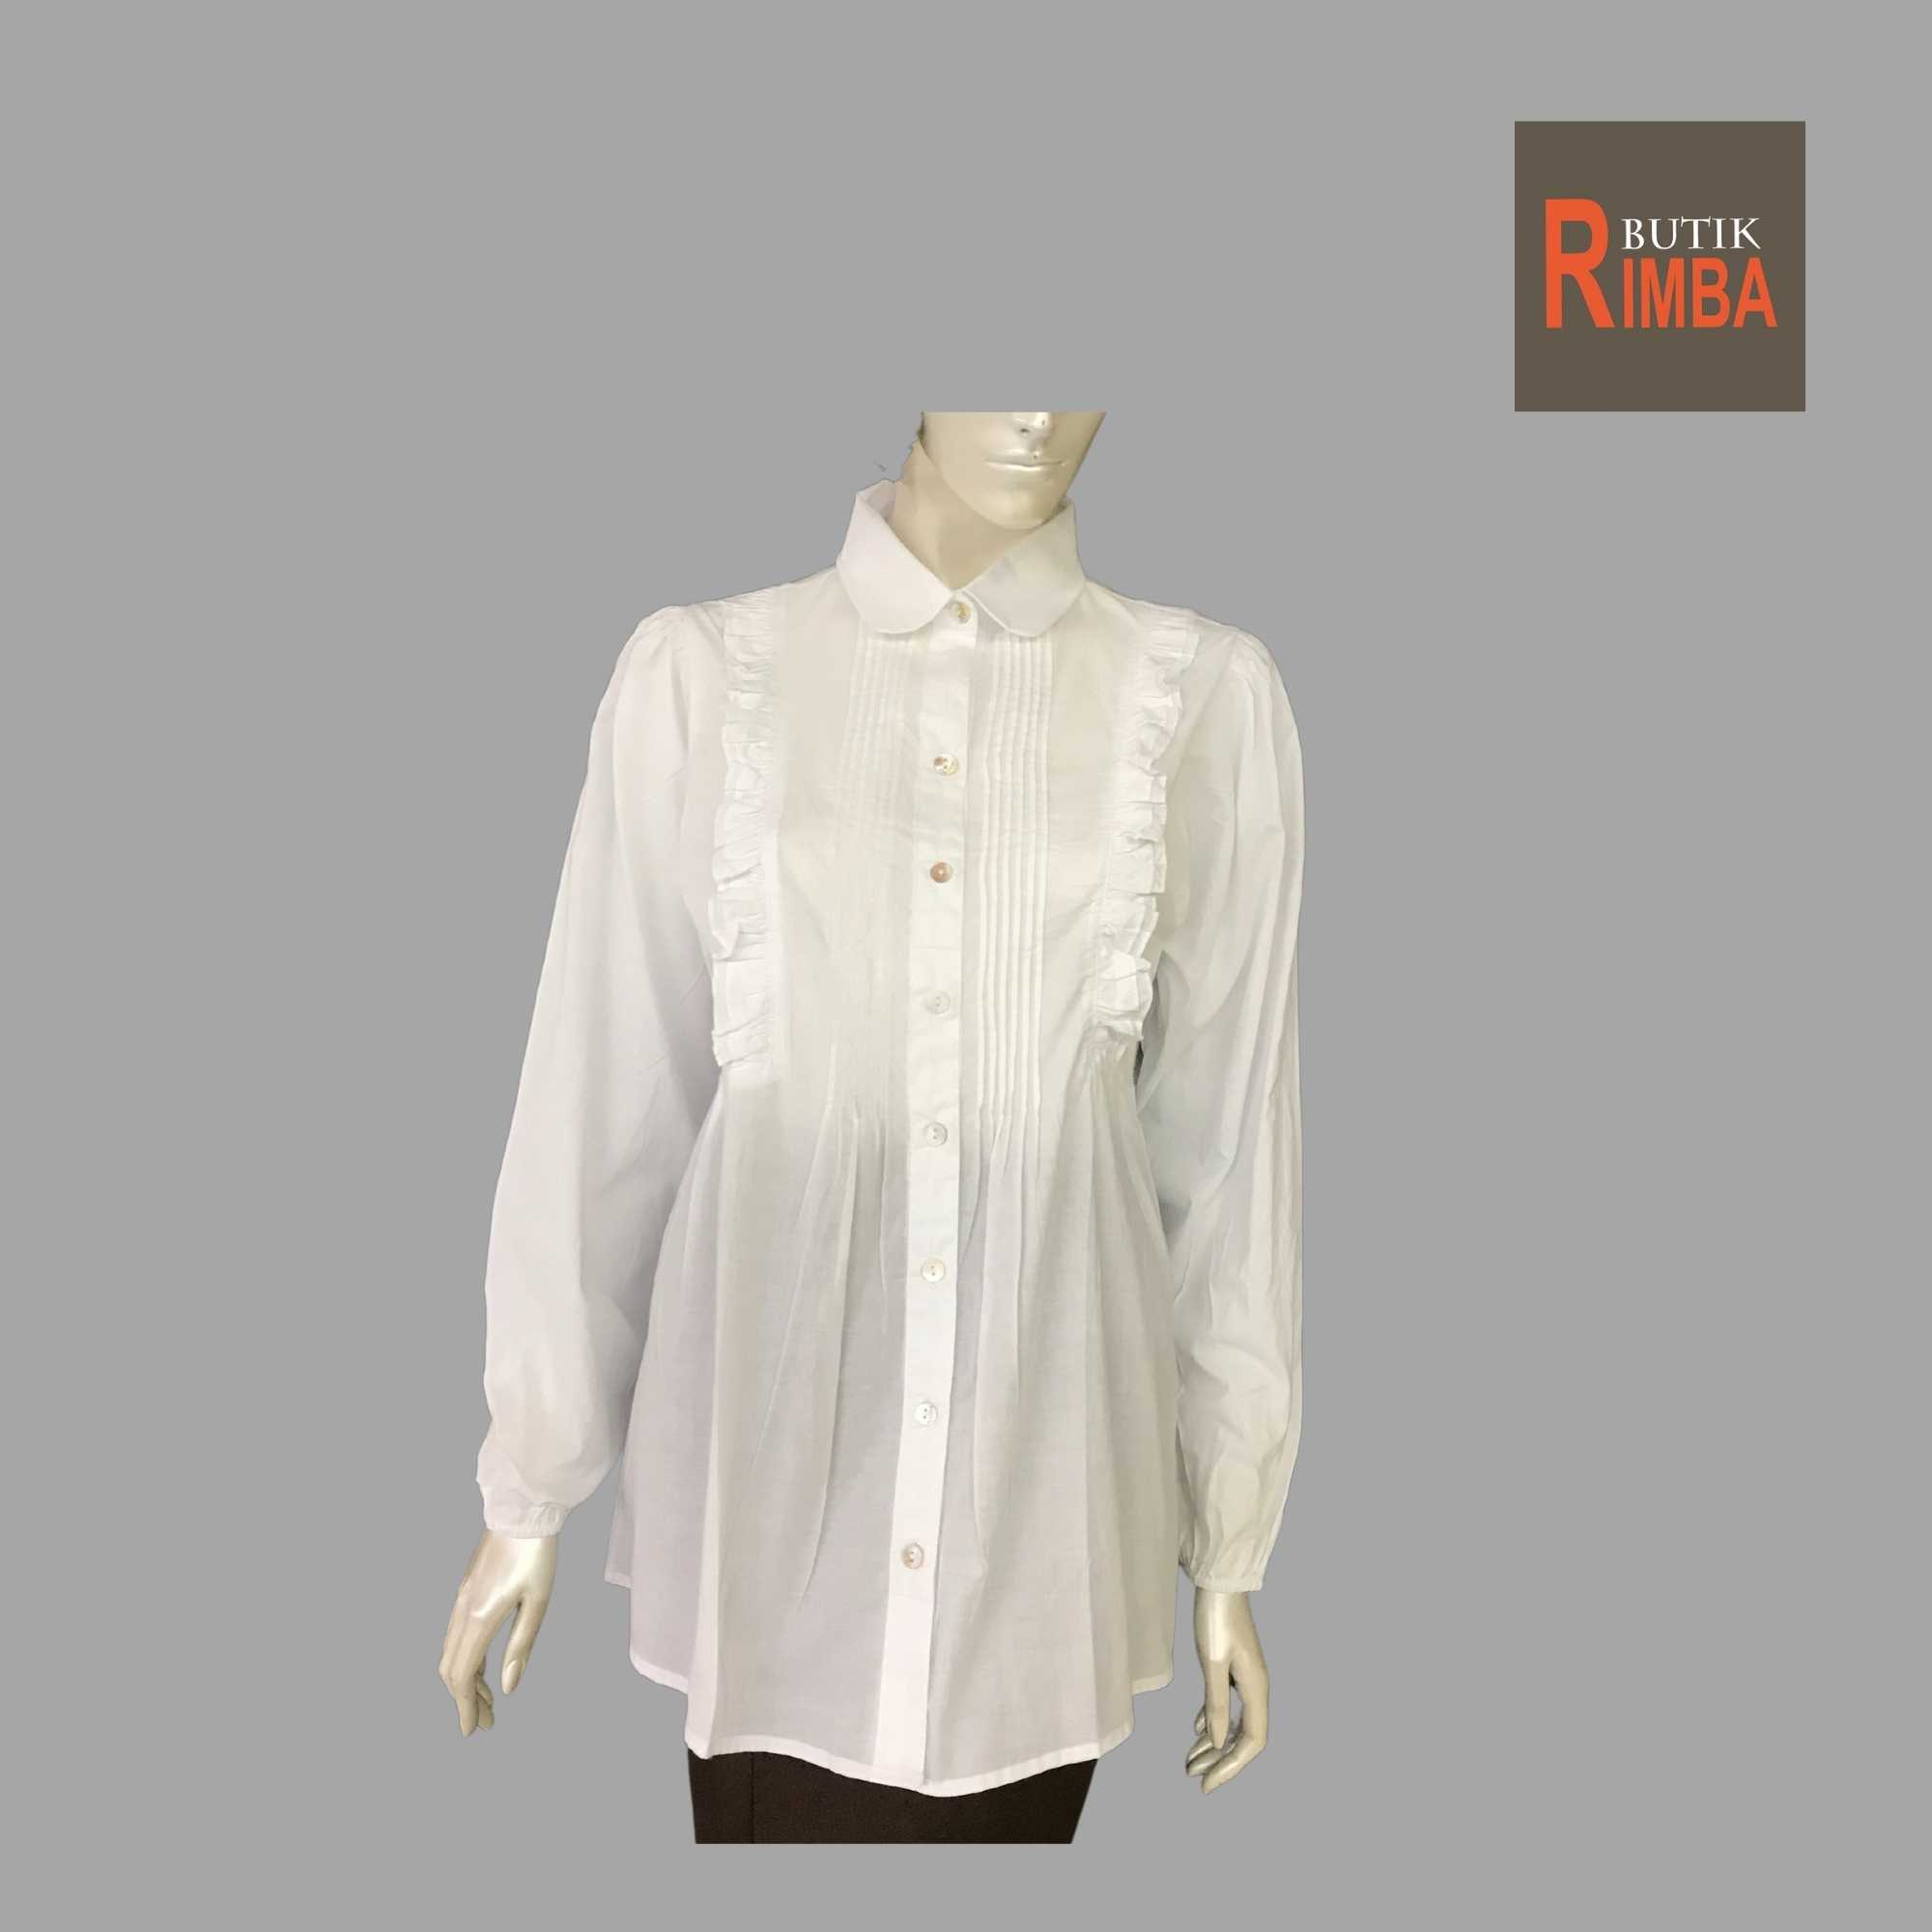 WOMEN CASUAL AND COMFORTABLE WHITE BLOUSE COTTON FREE SIZE PATTERN 13